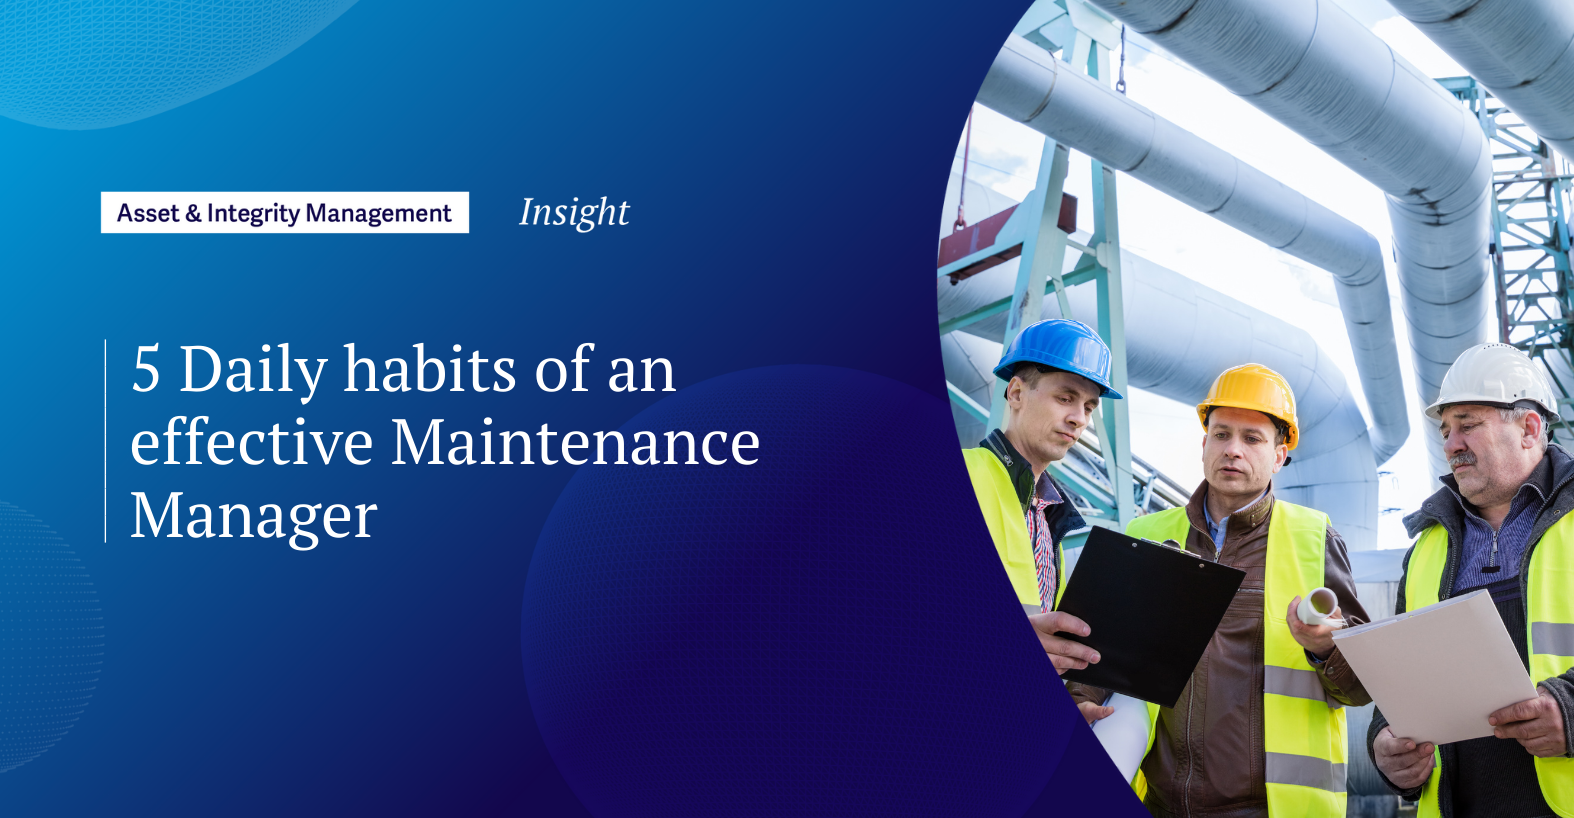 5 Daily habits of an effective Maintenance Manager